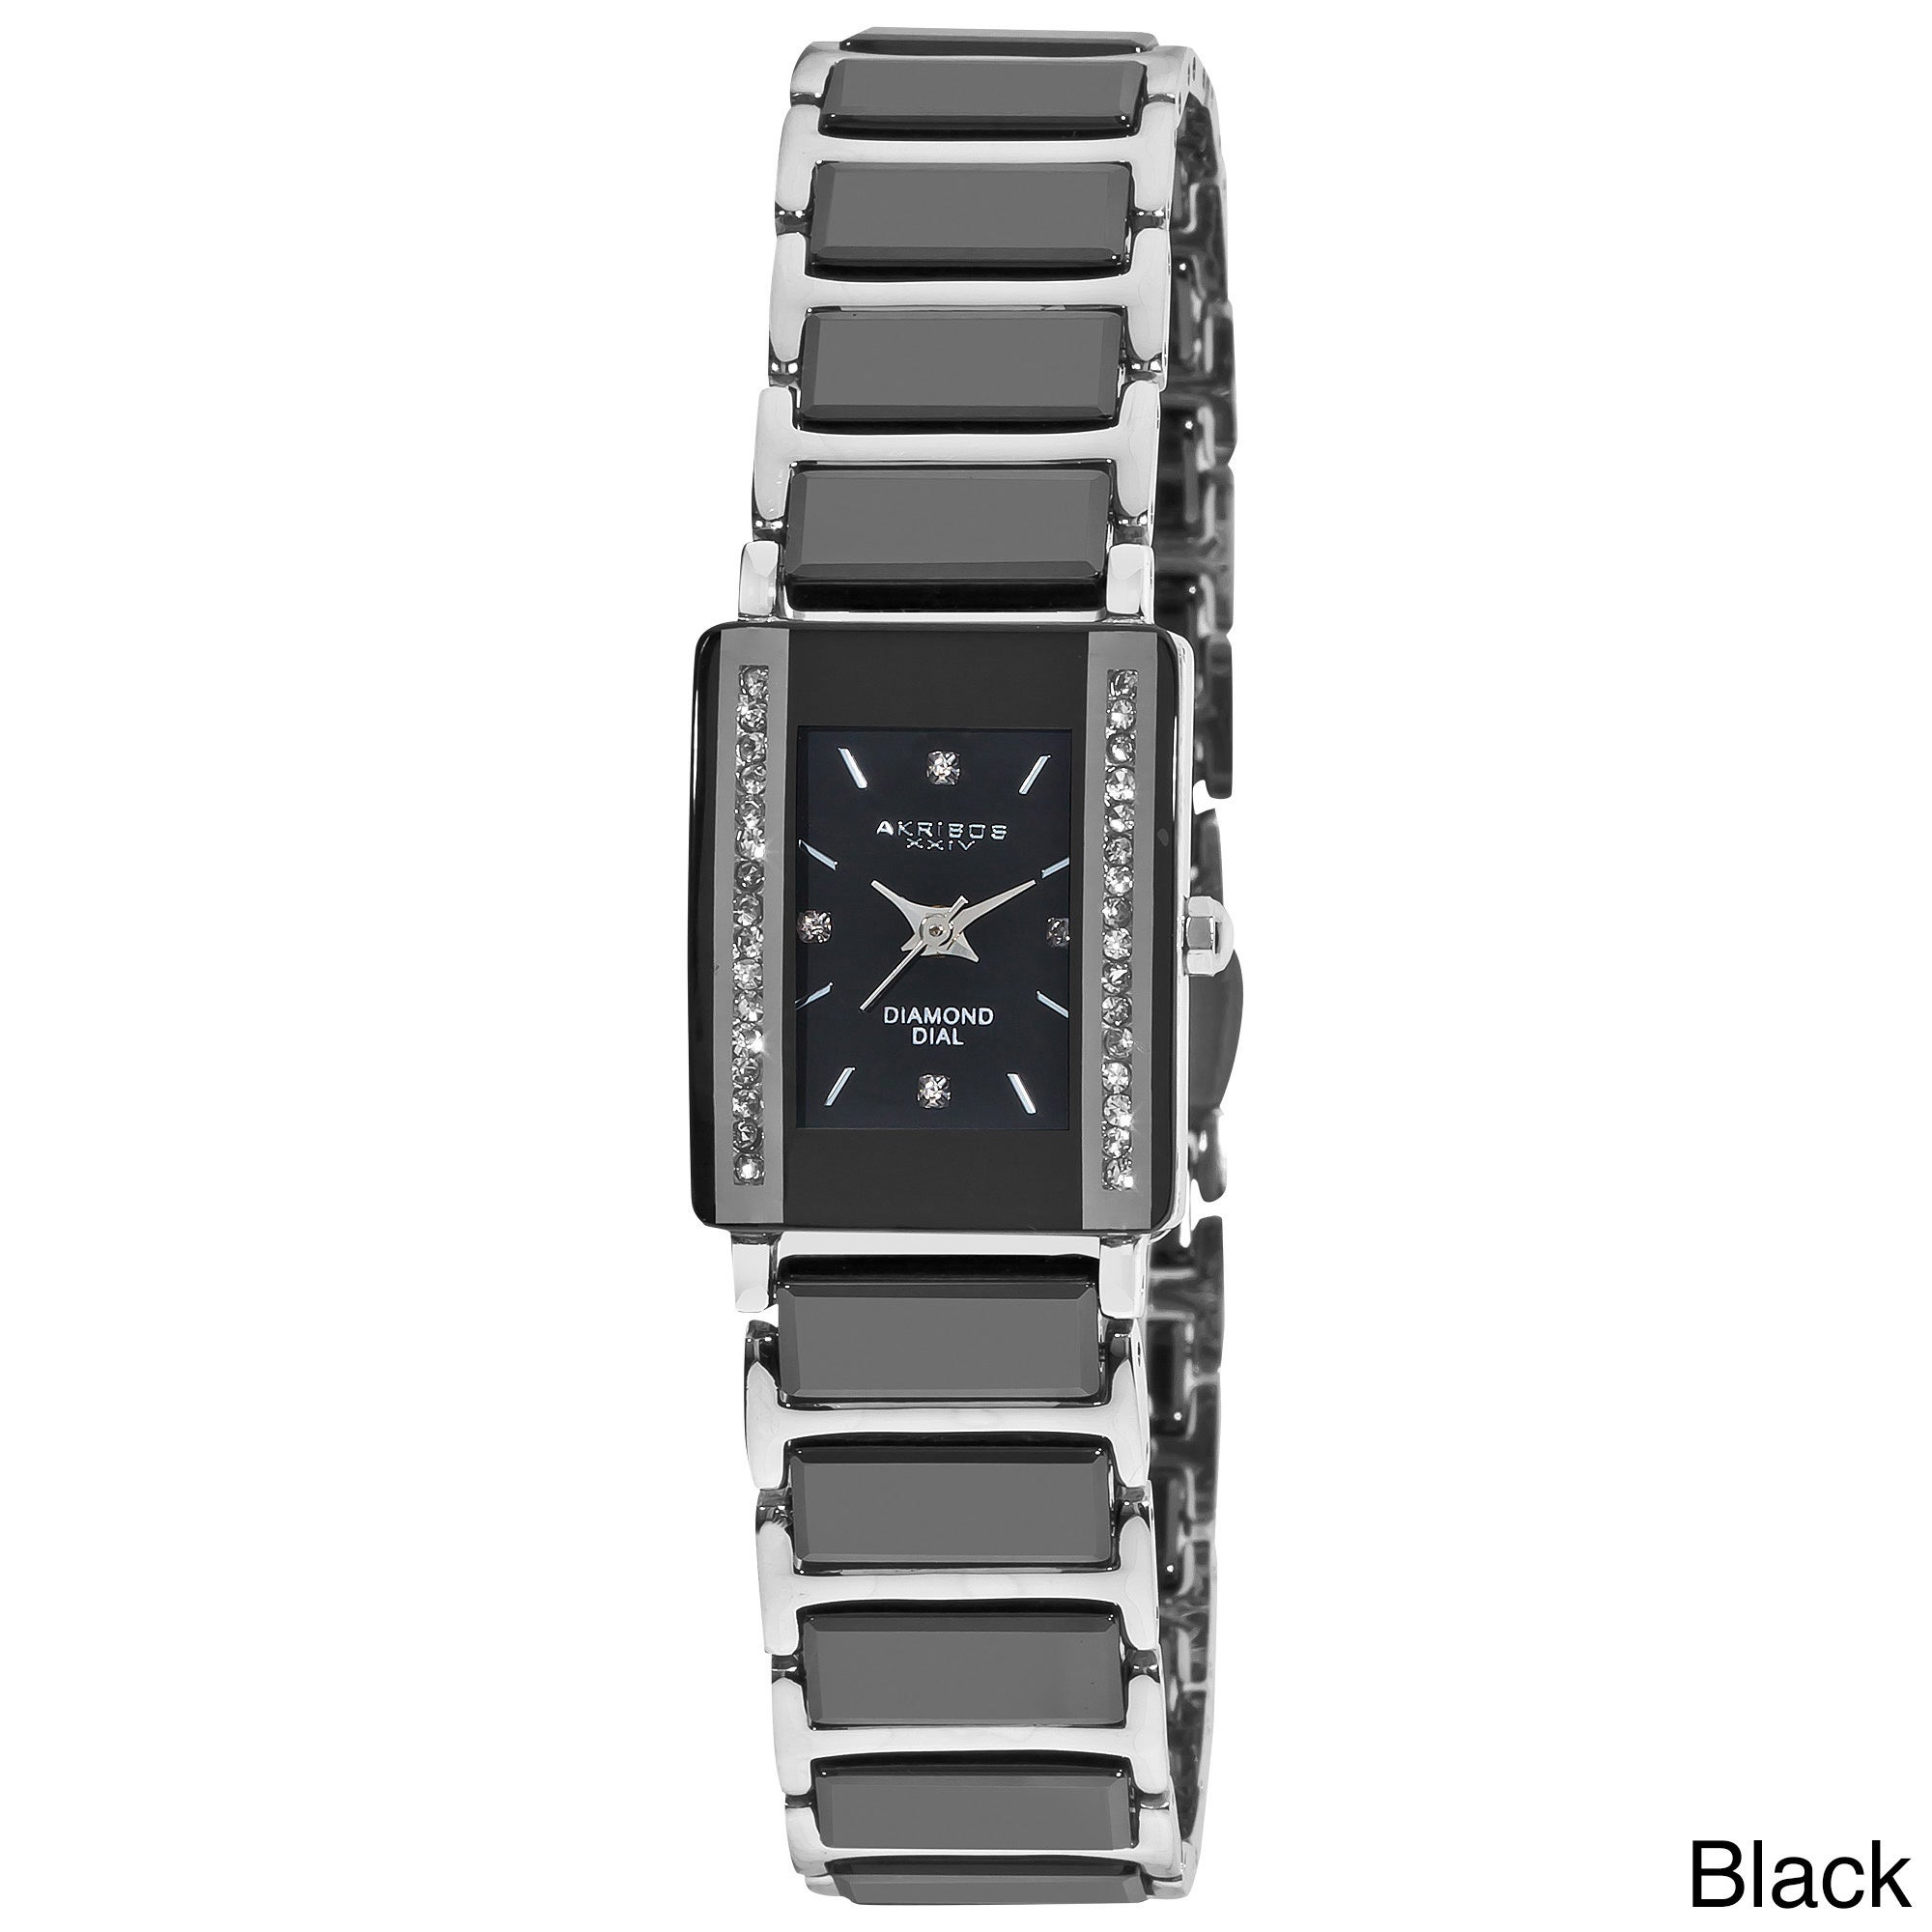 dial watches online india black price leather for rectangular buy best at strap men watch product titan